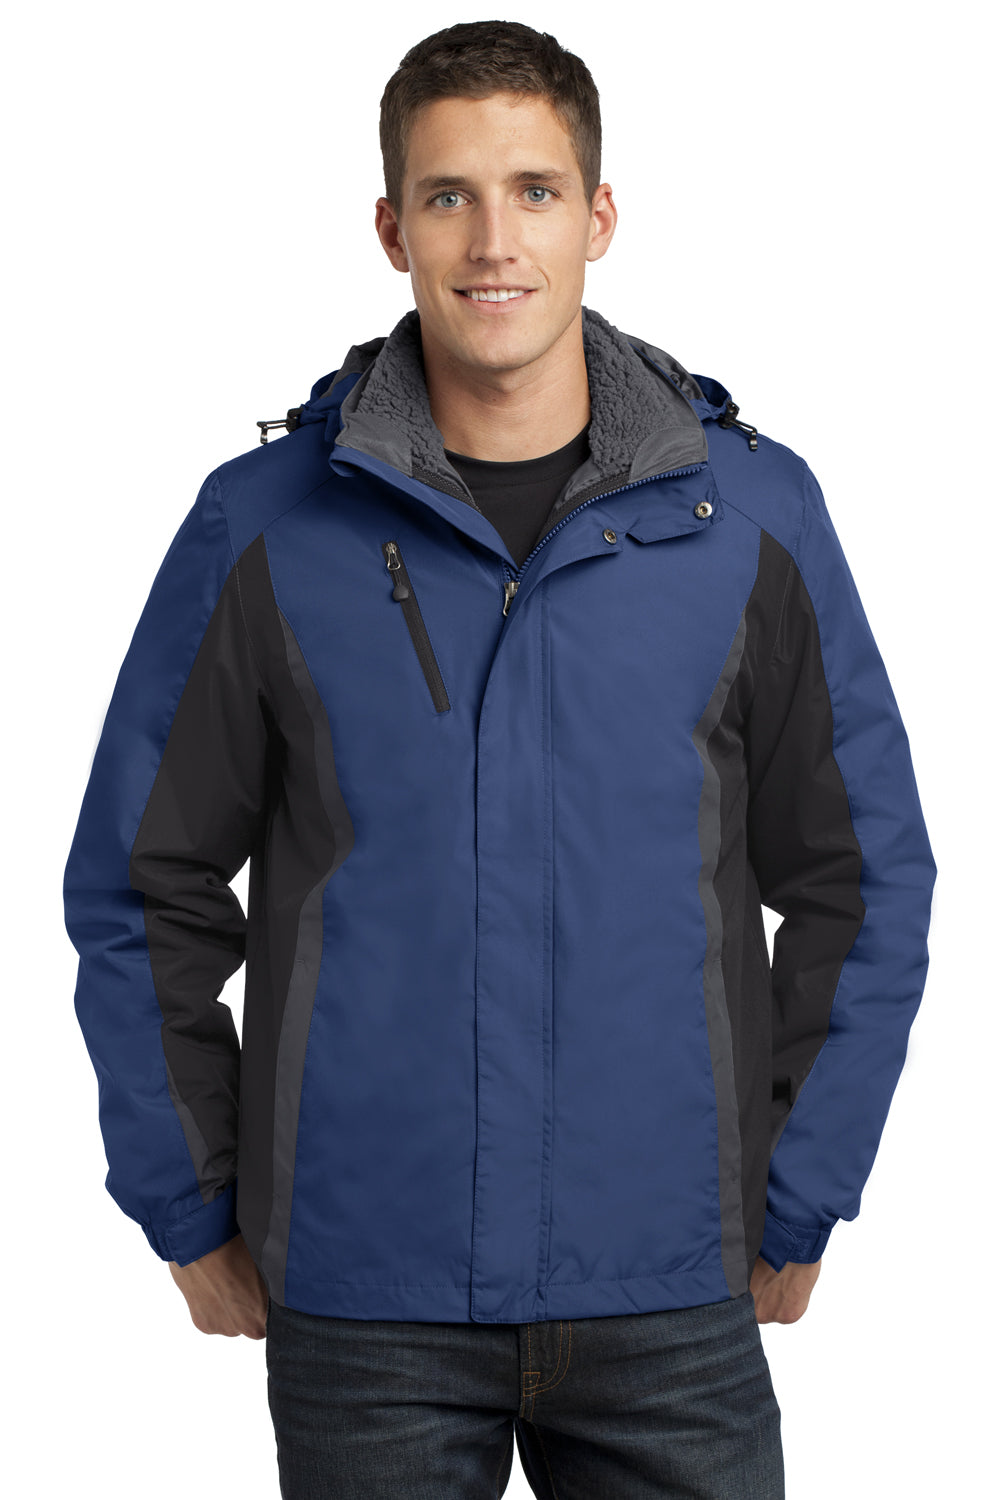 Port Authority J321 Mens 3-in-1 Wind & Water Resistant Full Zip Hooded Jacket Admiral Blue/Black/Grey Front